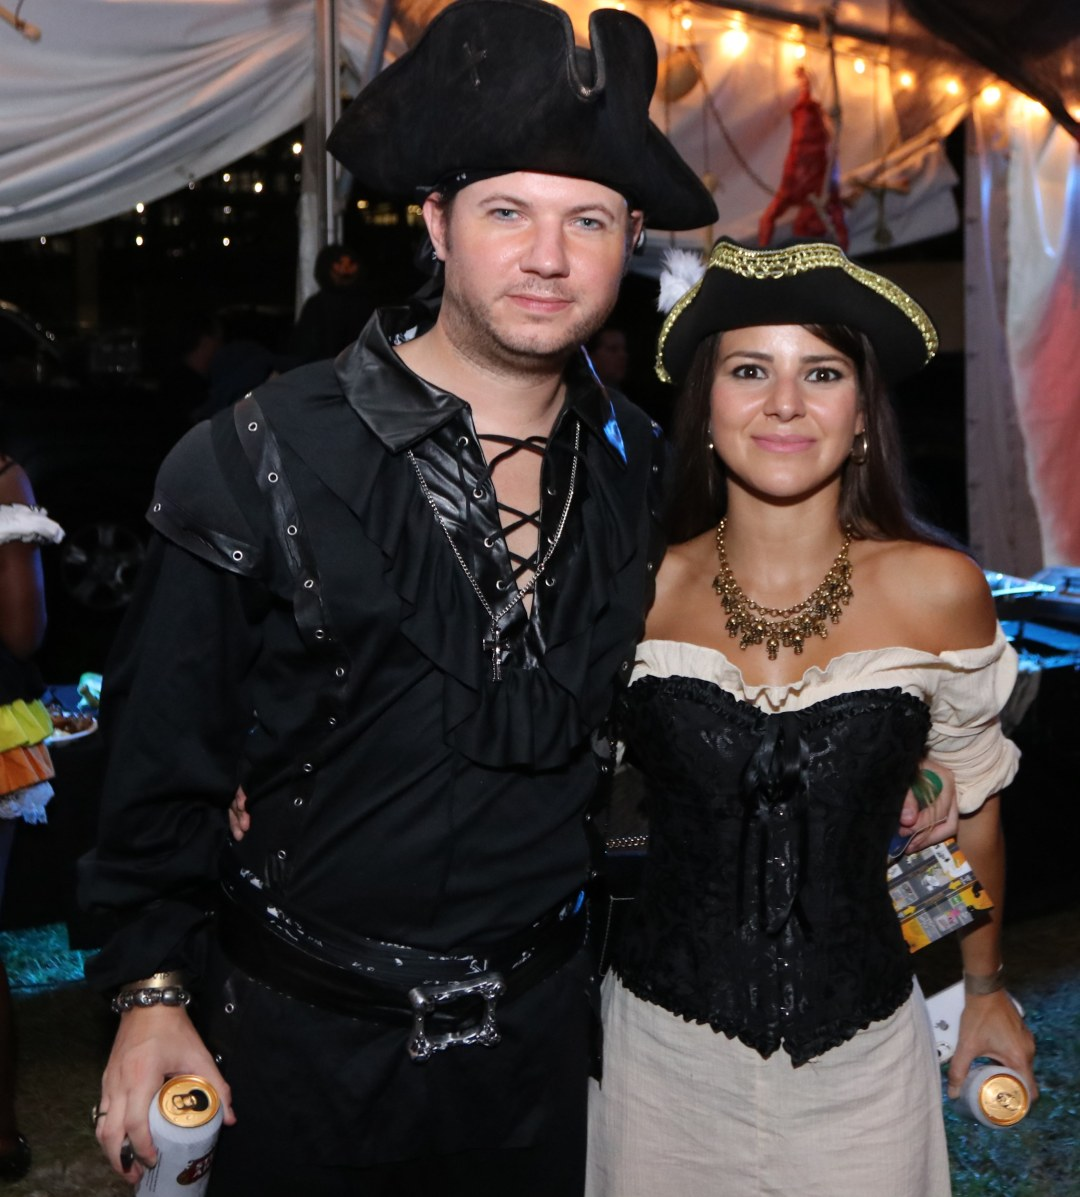 A couple of pirates at Moonfest 2019 (photo by: Mike Jalches)